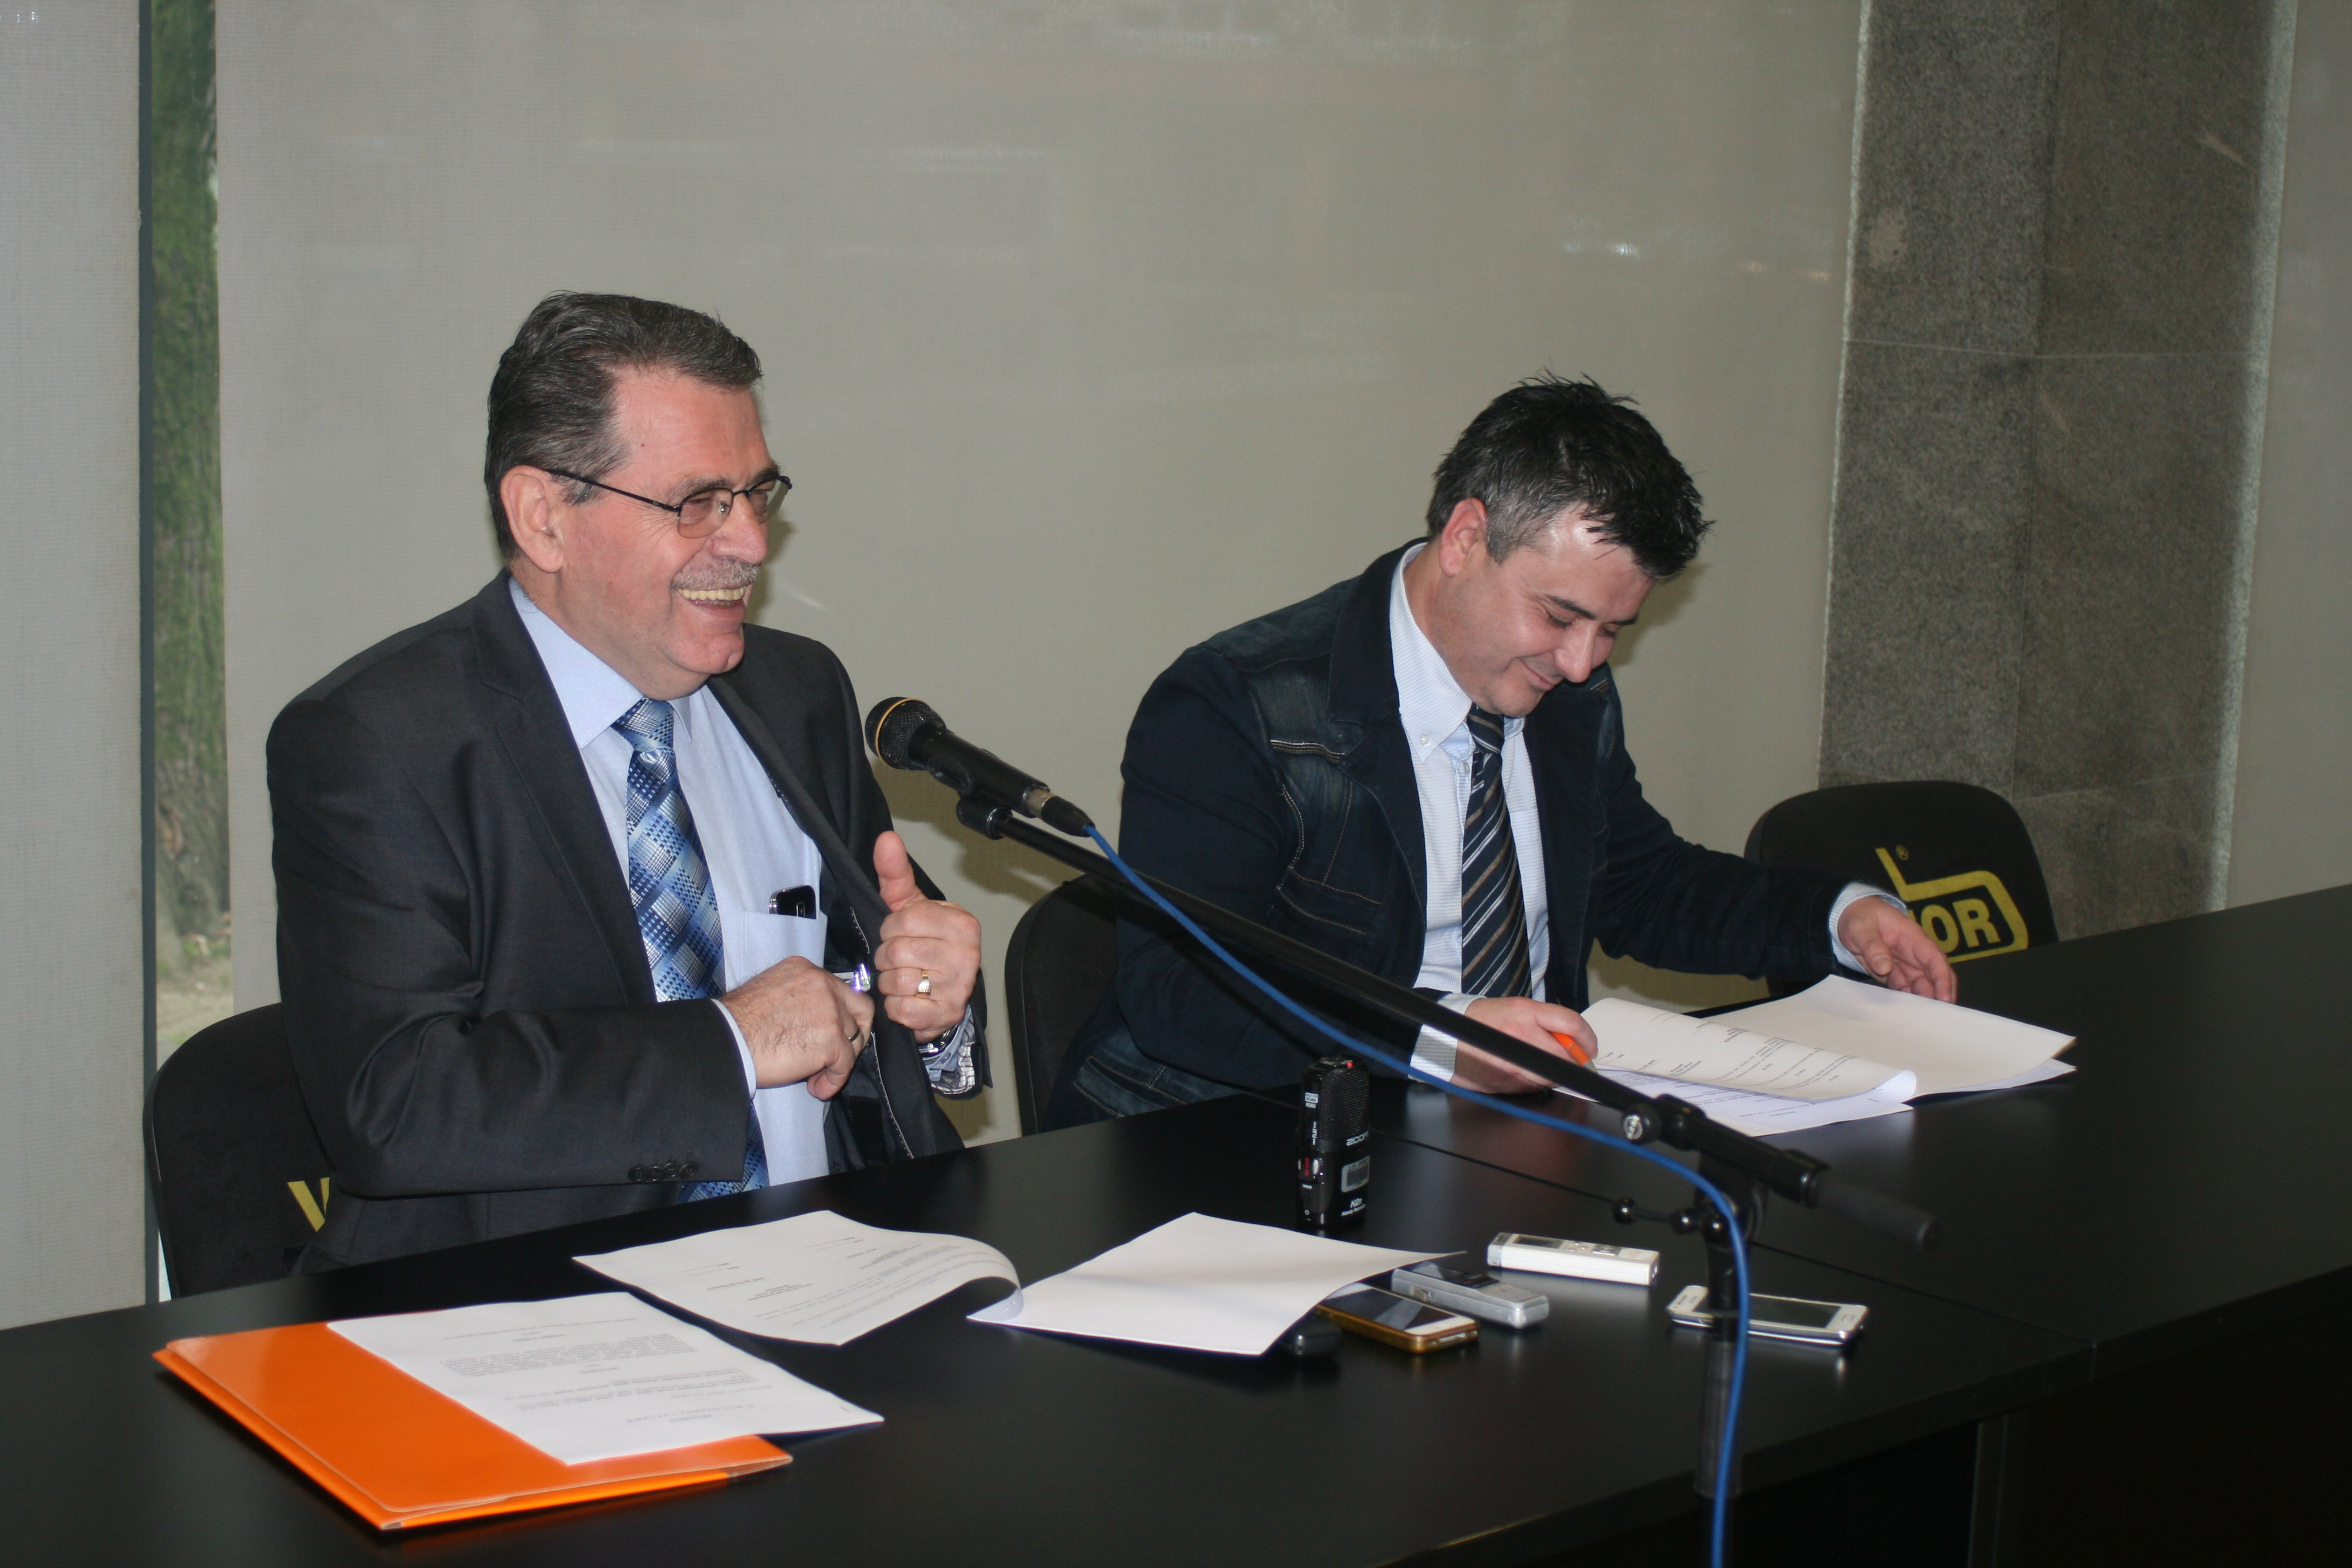 Tourism a chance for regional cooperation